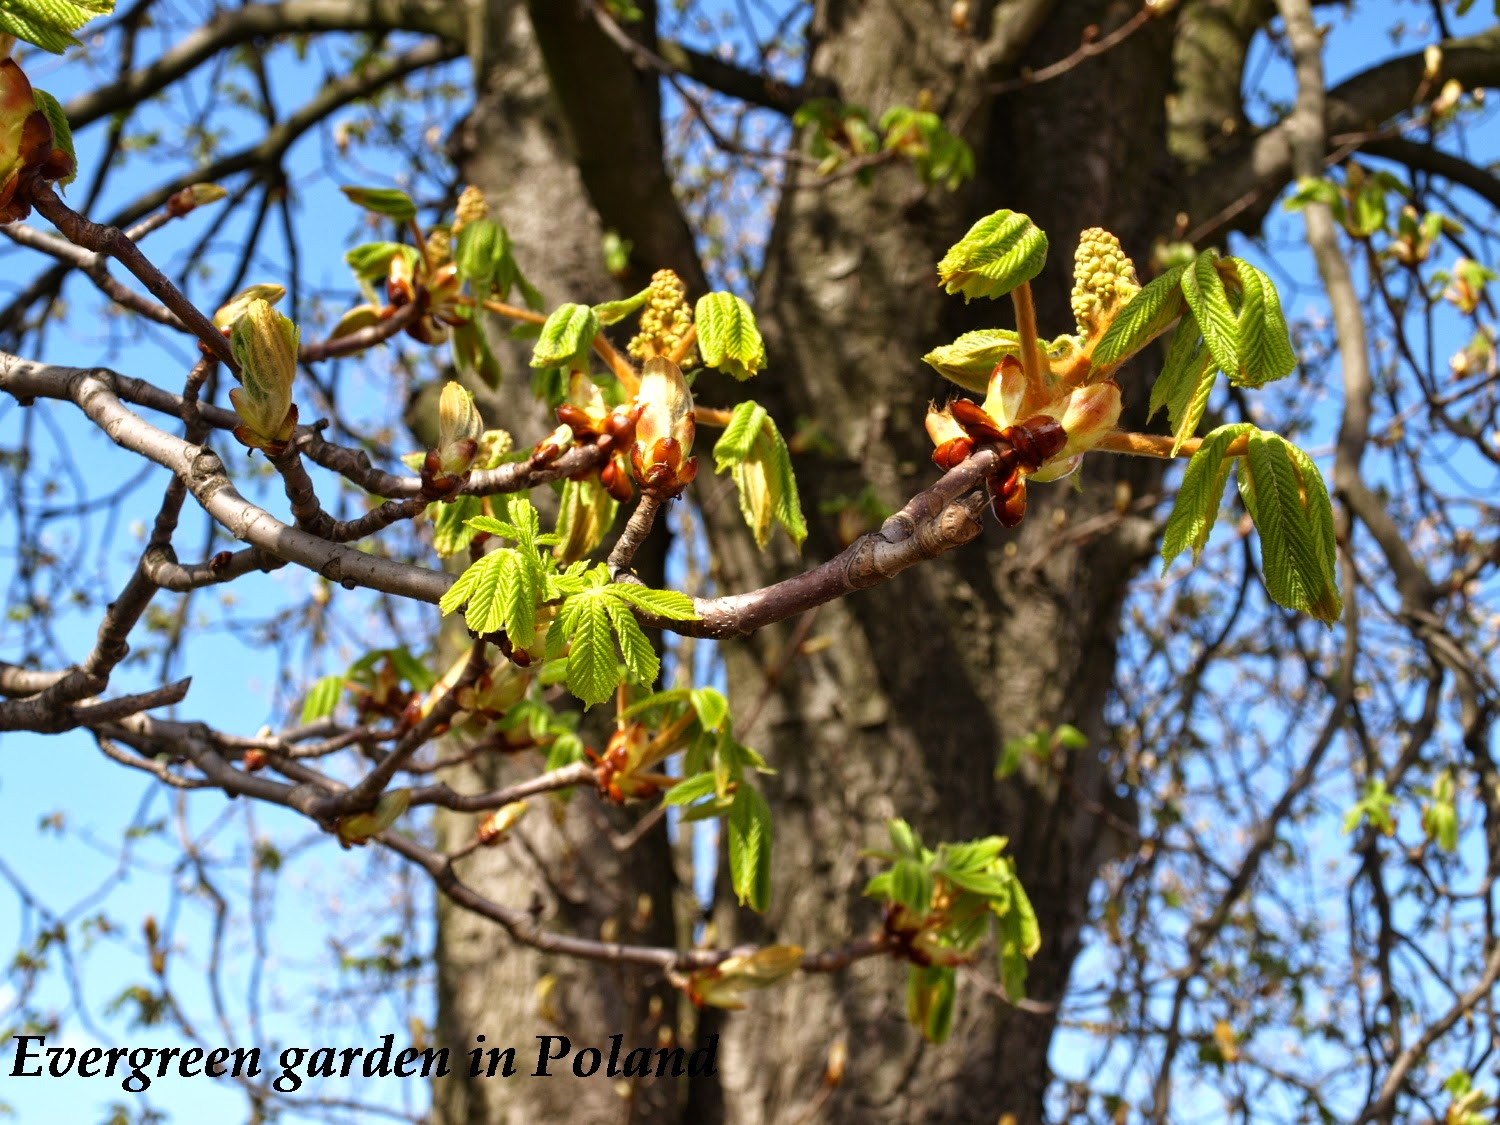 aesculus will start to bloom very soon